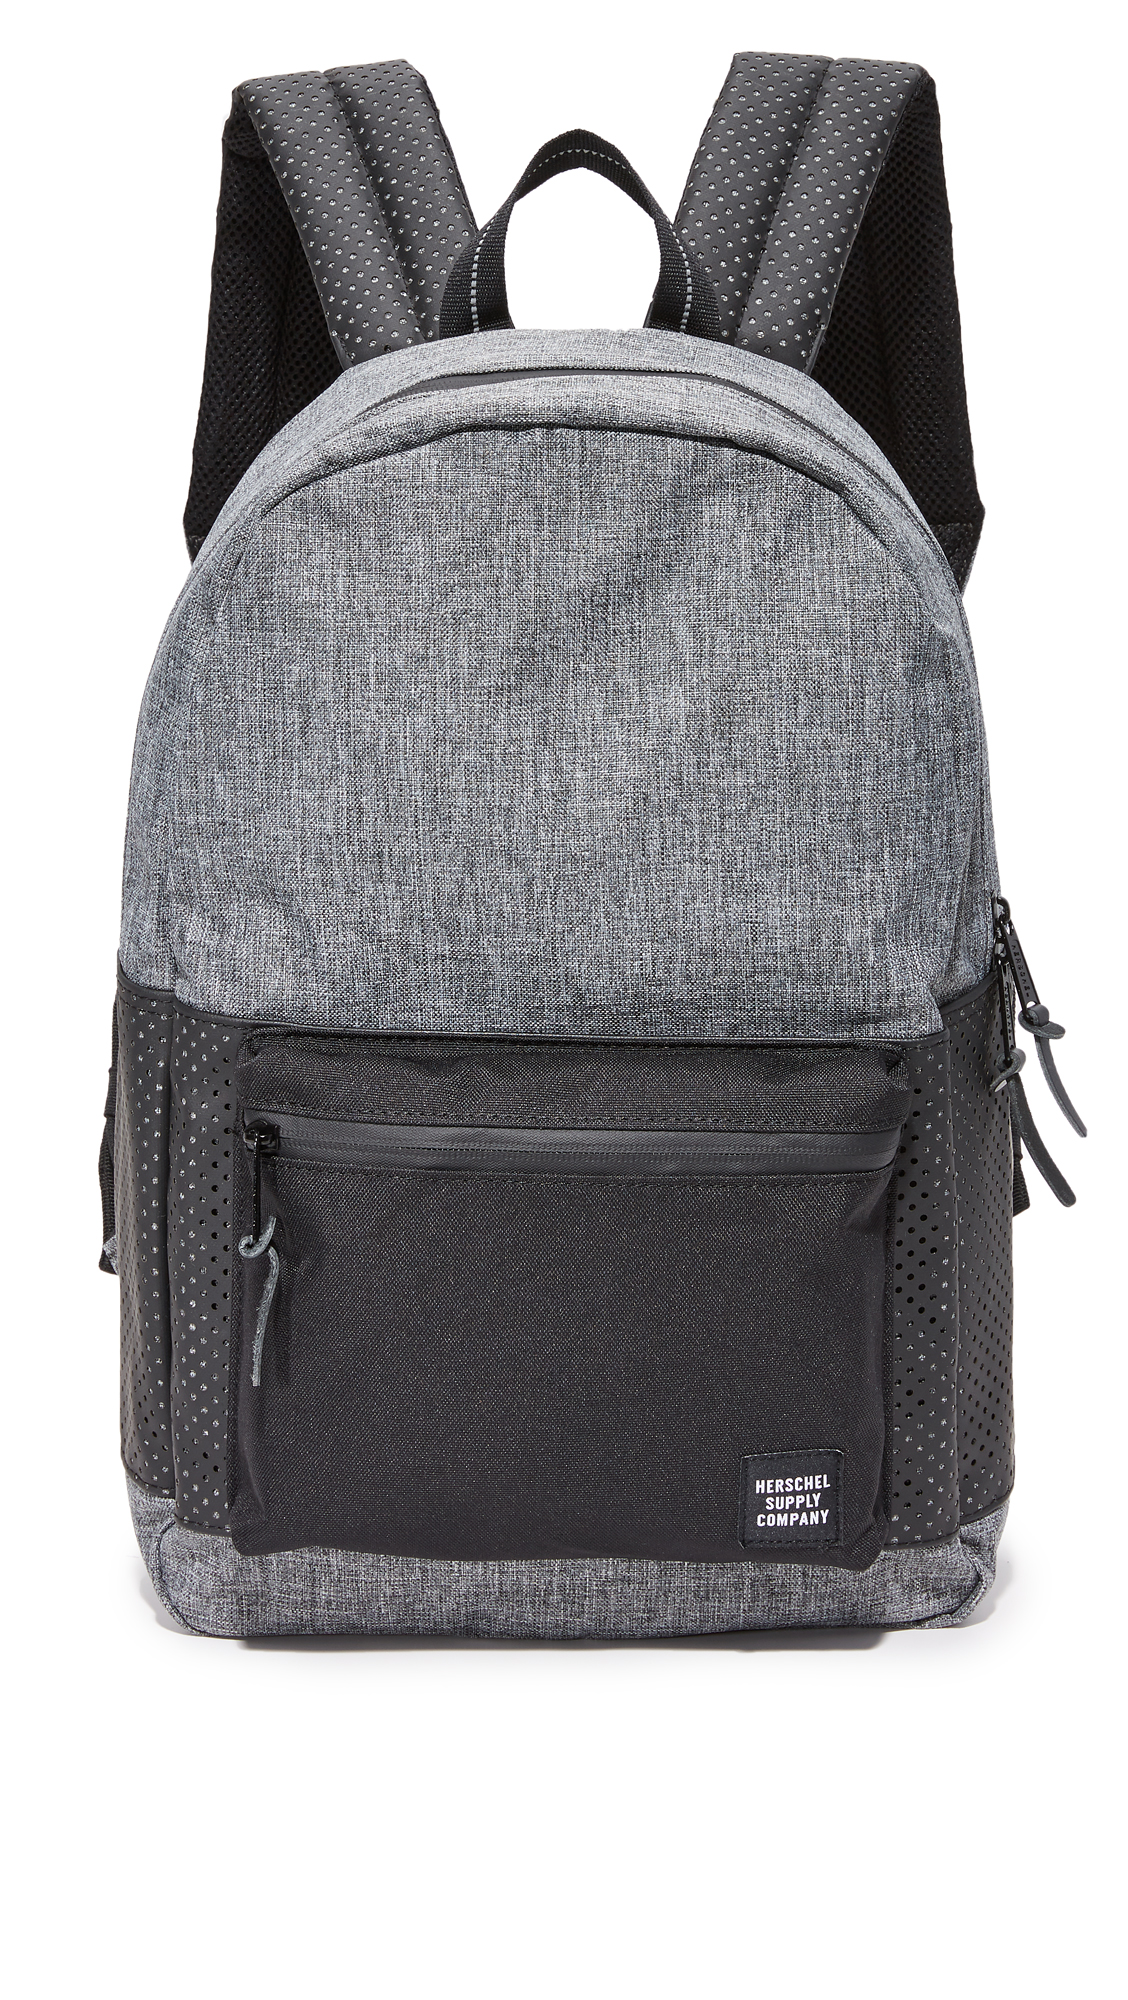 da24ad24ba Herschel Supply Co. Aspect Settlement Backpack